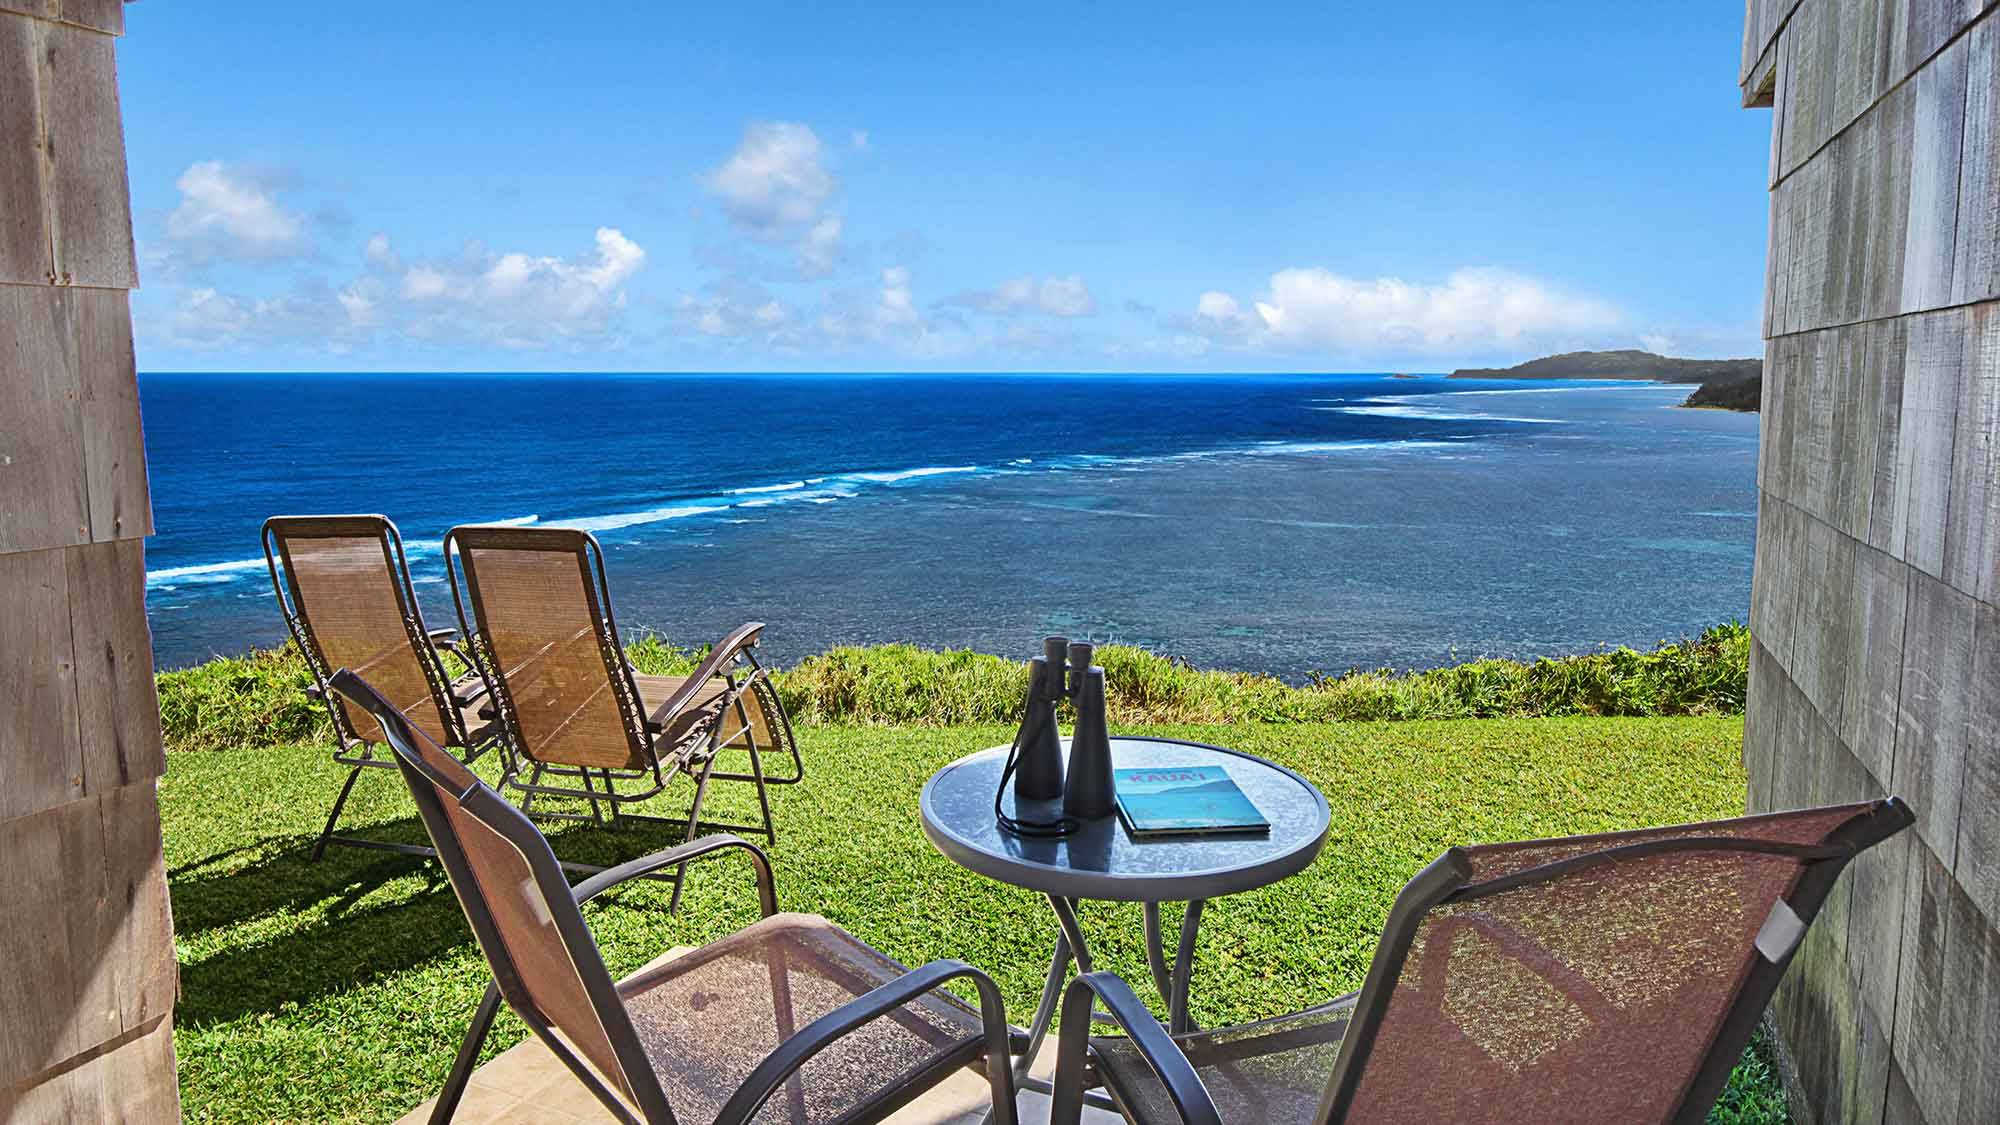 Sealodge at Princeville #E3 - Oceanfrtont Lanai View To Kilauea - Parrish Kauai